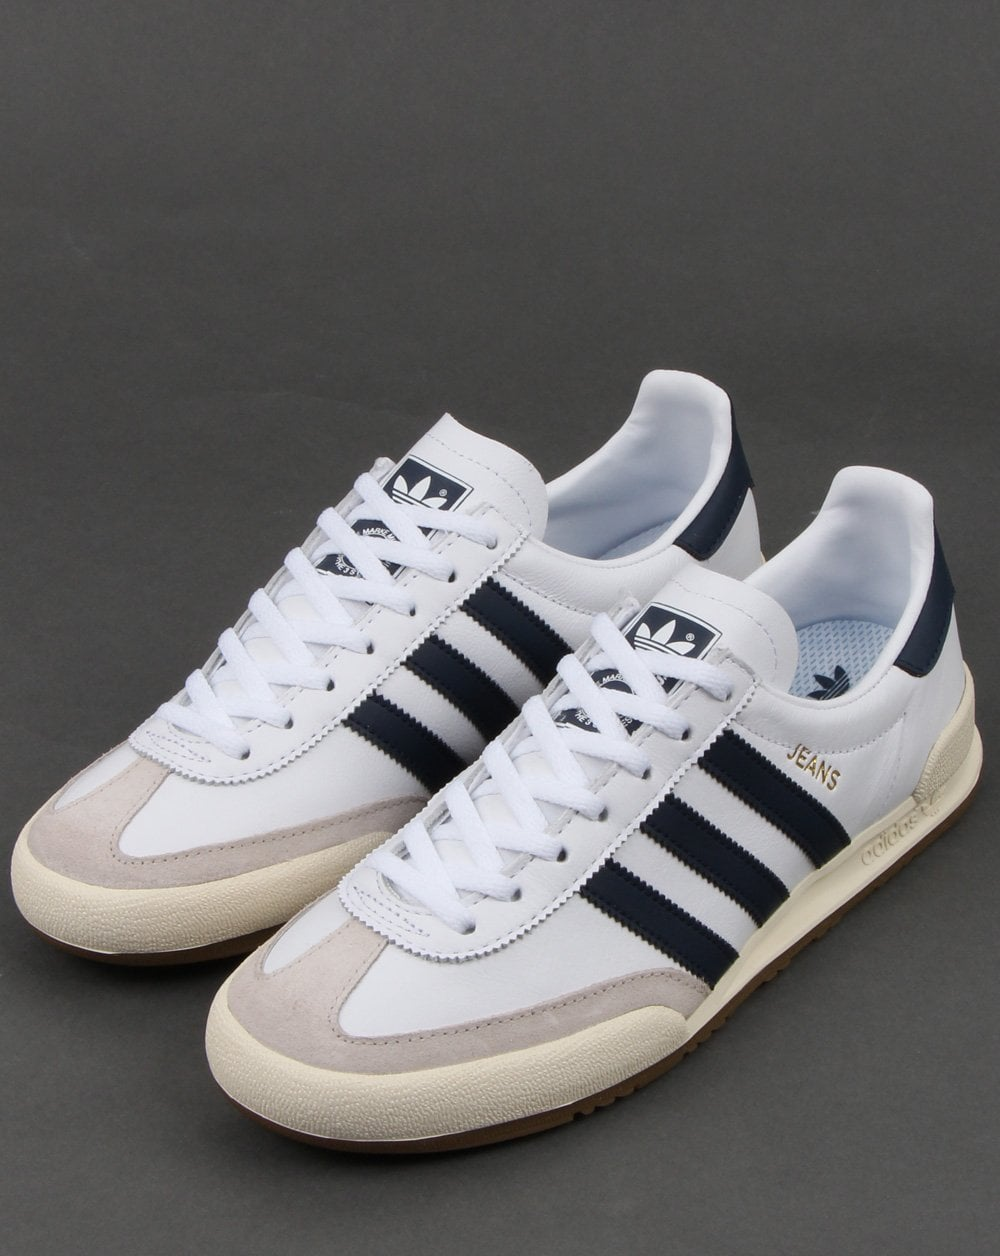 Adidas Jeans Trainers Whitenavy